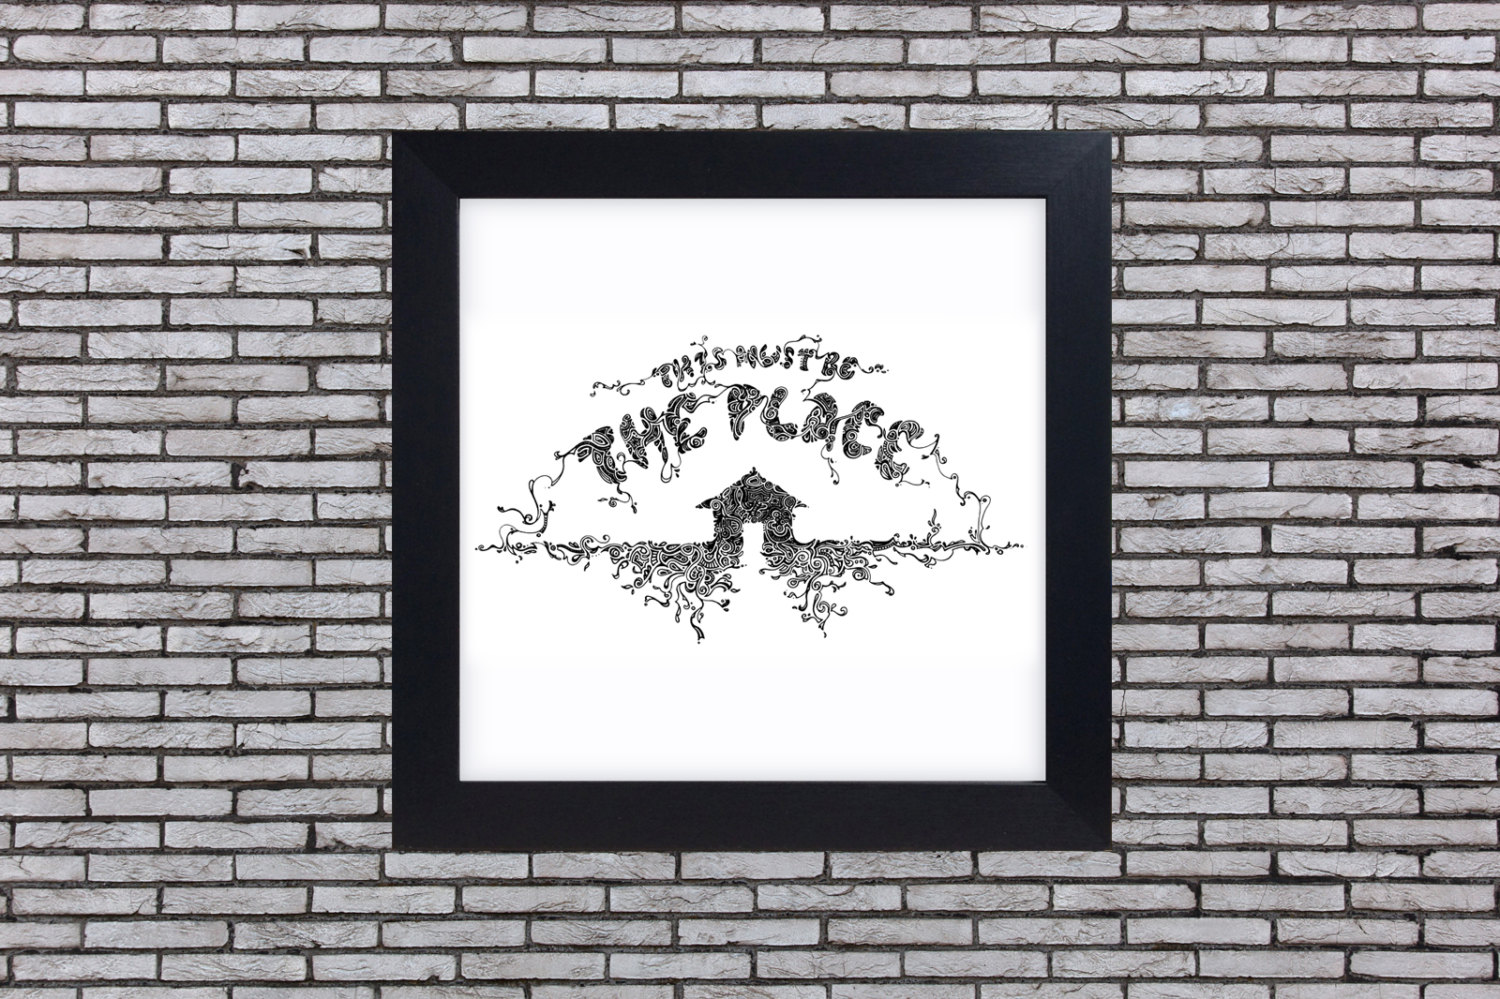 Drawn musical lover Lyrics the Etsy Must Be